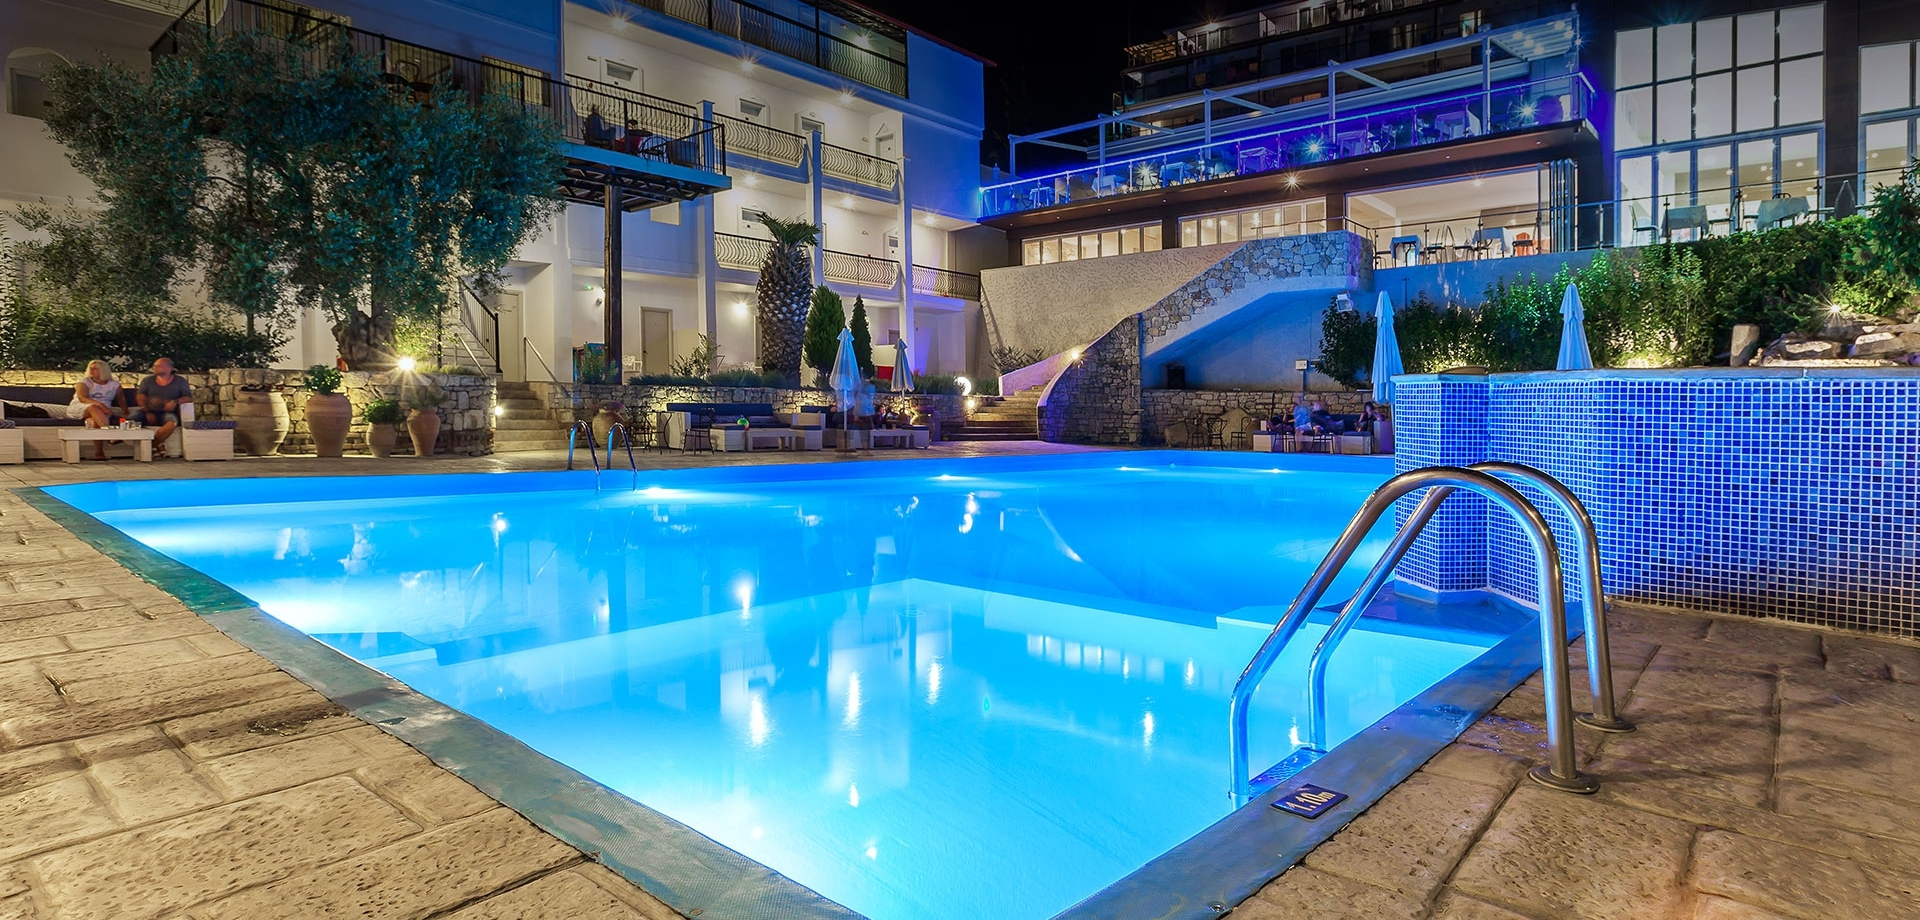 4* Kriopigi Hotel - Χαλκιδική, Κασσάνδρα - Κρυοπηγή ? -50% ? 6 Ημέρες (5 Διανυκτερεύσεις) ? 2 Άτομα ΚΑΙ ένα Παιδί έως 6 ετών ? Πλήρης Διατροφή ? 22/06/2019 έως 12/07/2019 και 24/08/2019 έως 20/09/2019 ? <strong>Επιπλέον 1 Διανυκτέρευση ΔΩΡΟ με COSMOTE DEALS for YOU!</strong>